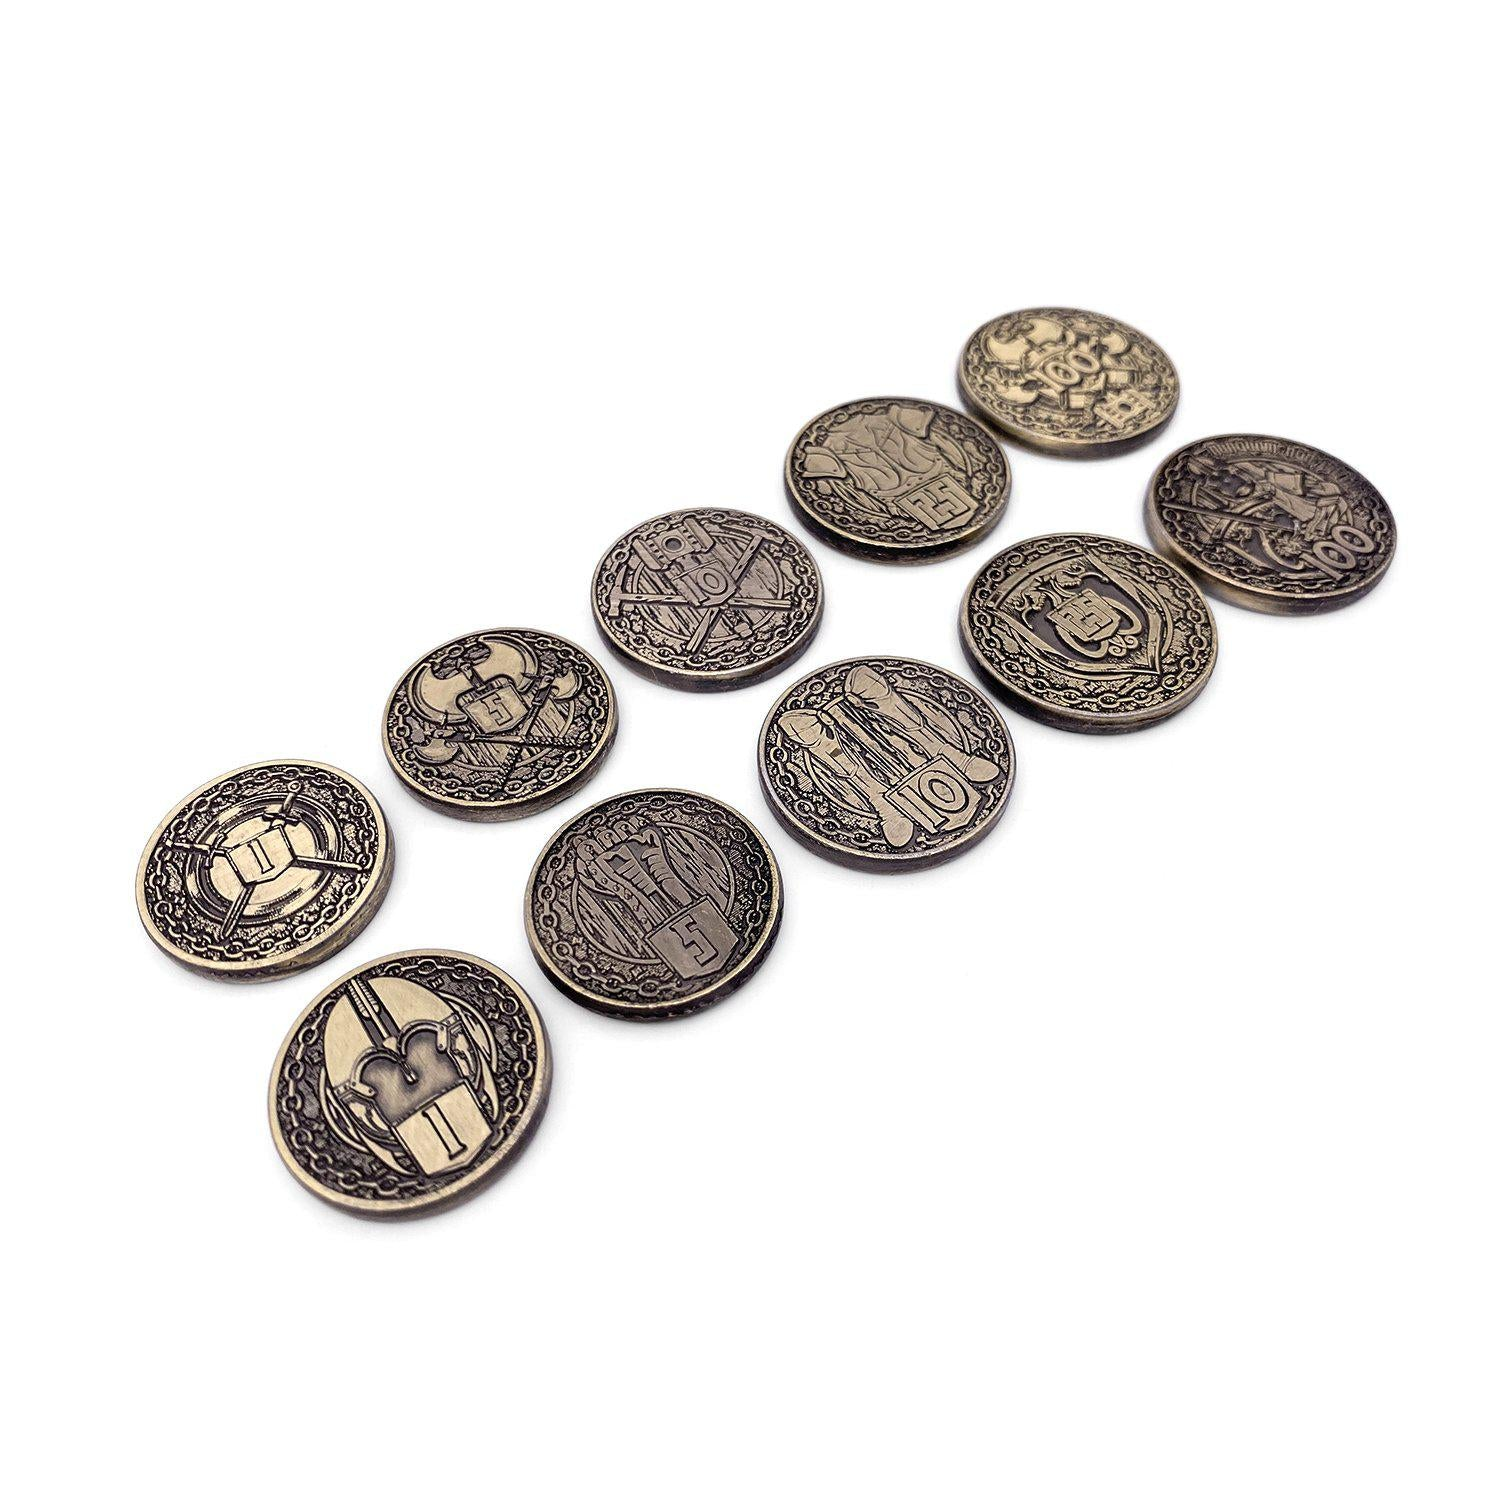 Adventure Coins - Fighter Metal Coins Set of 10